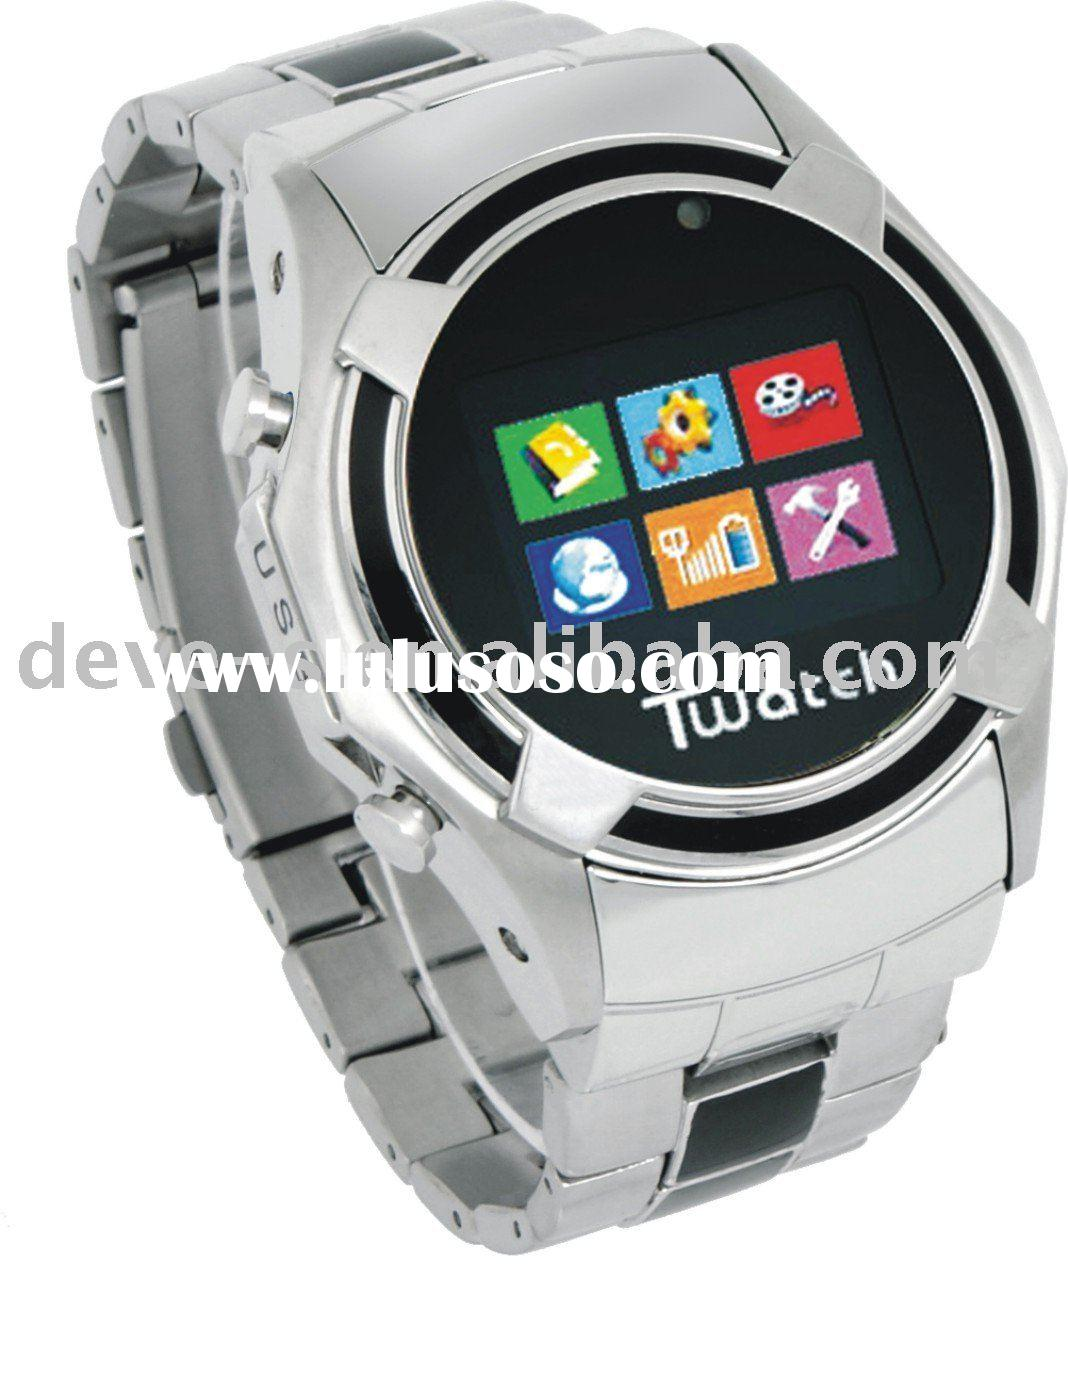 S760 KK Video 3G watch mobile phone,dual sim watch cell phone